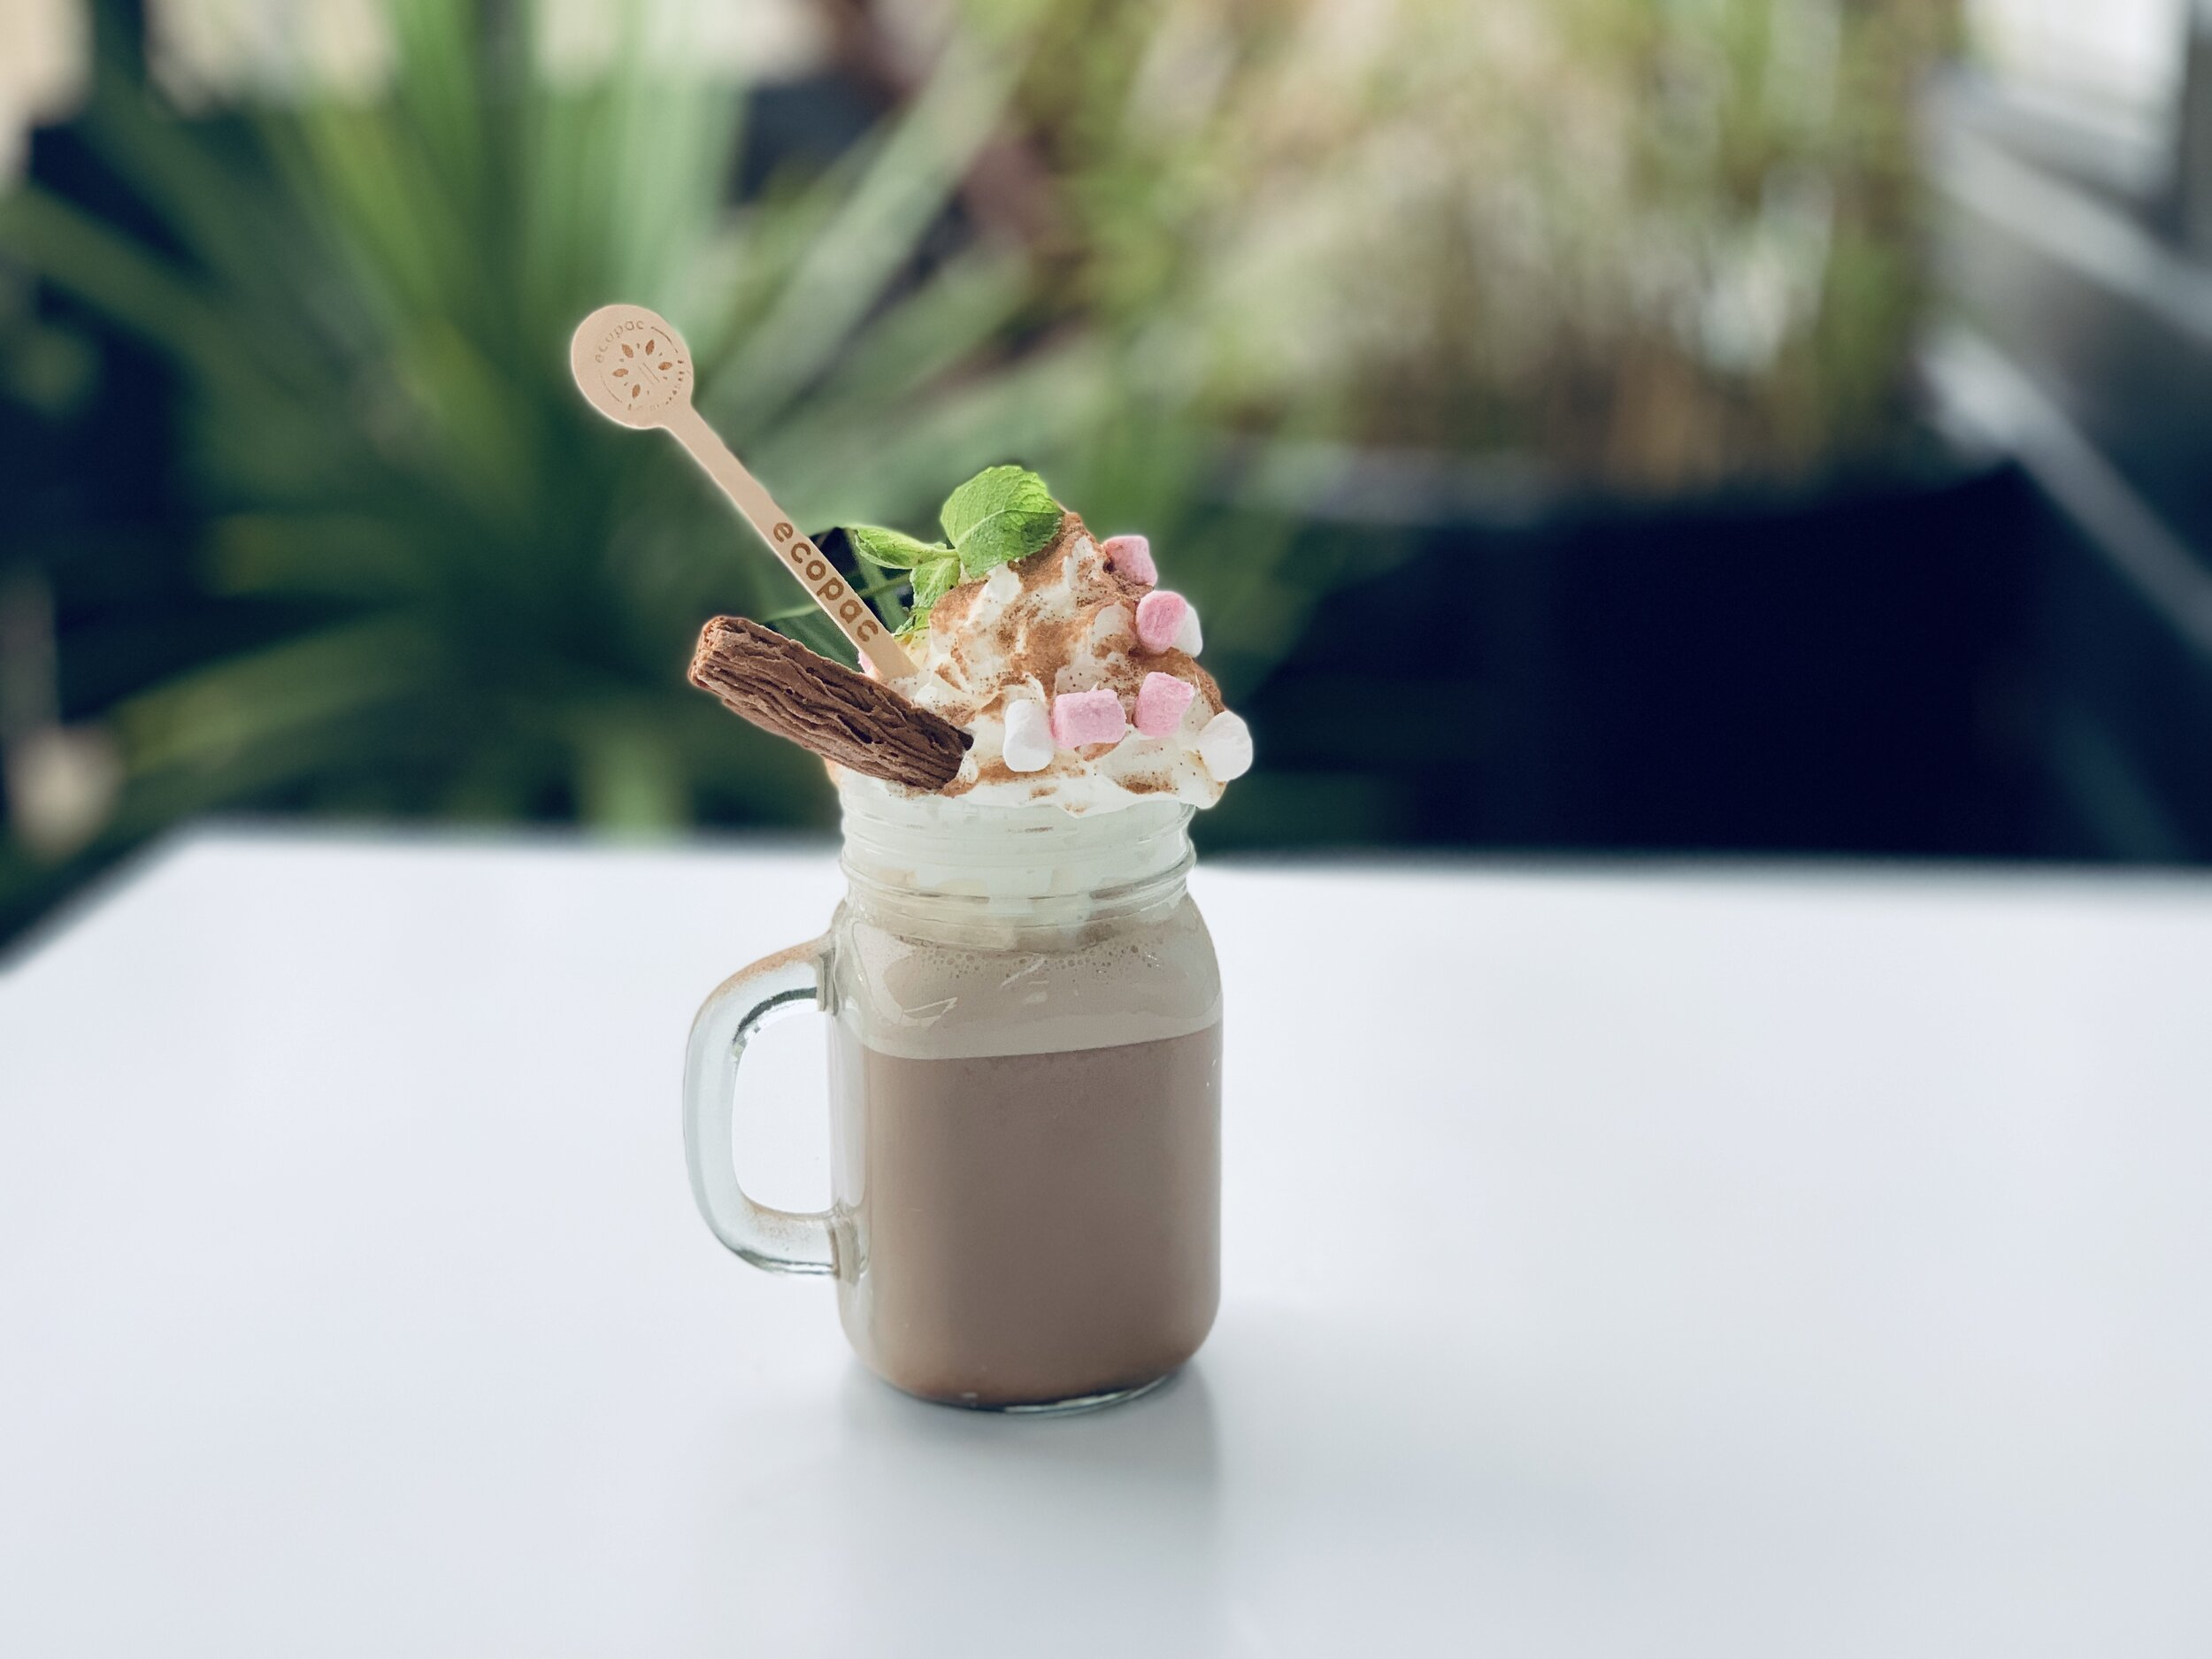 Or just pop in for a hot chocolate!